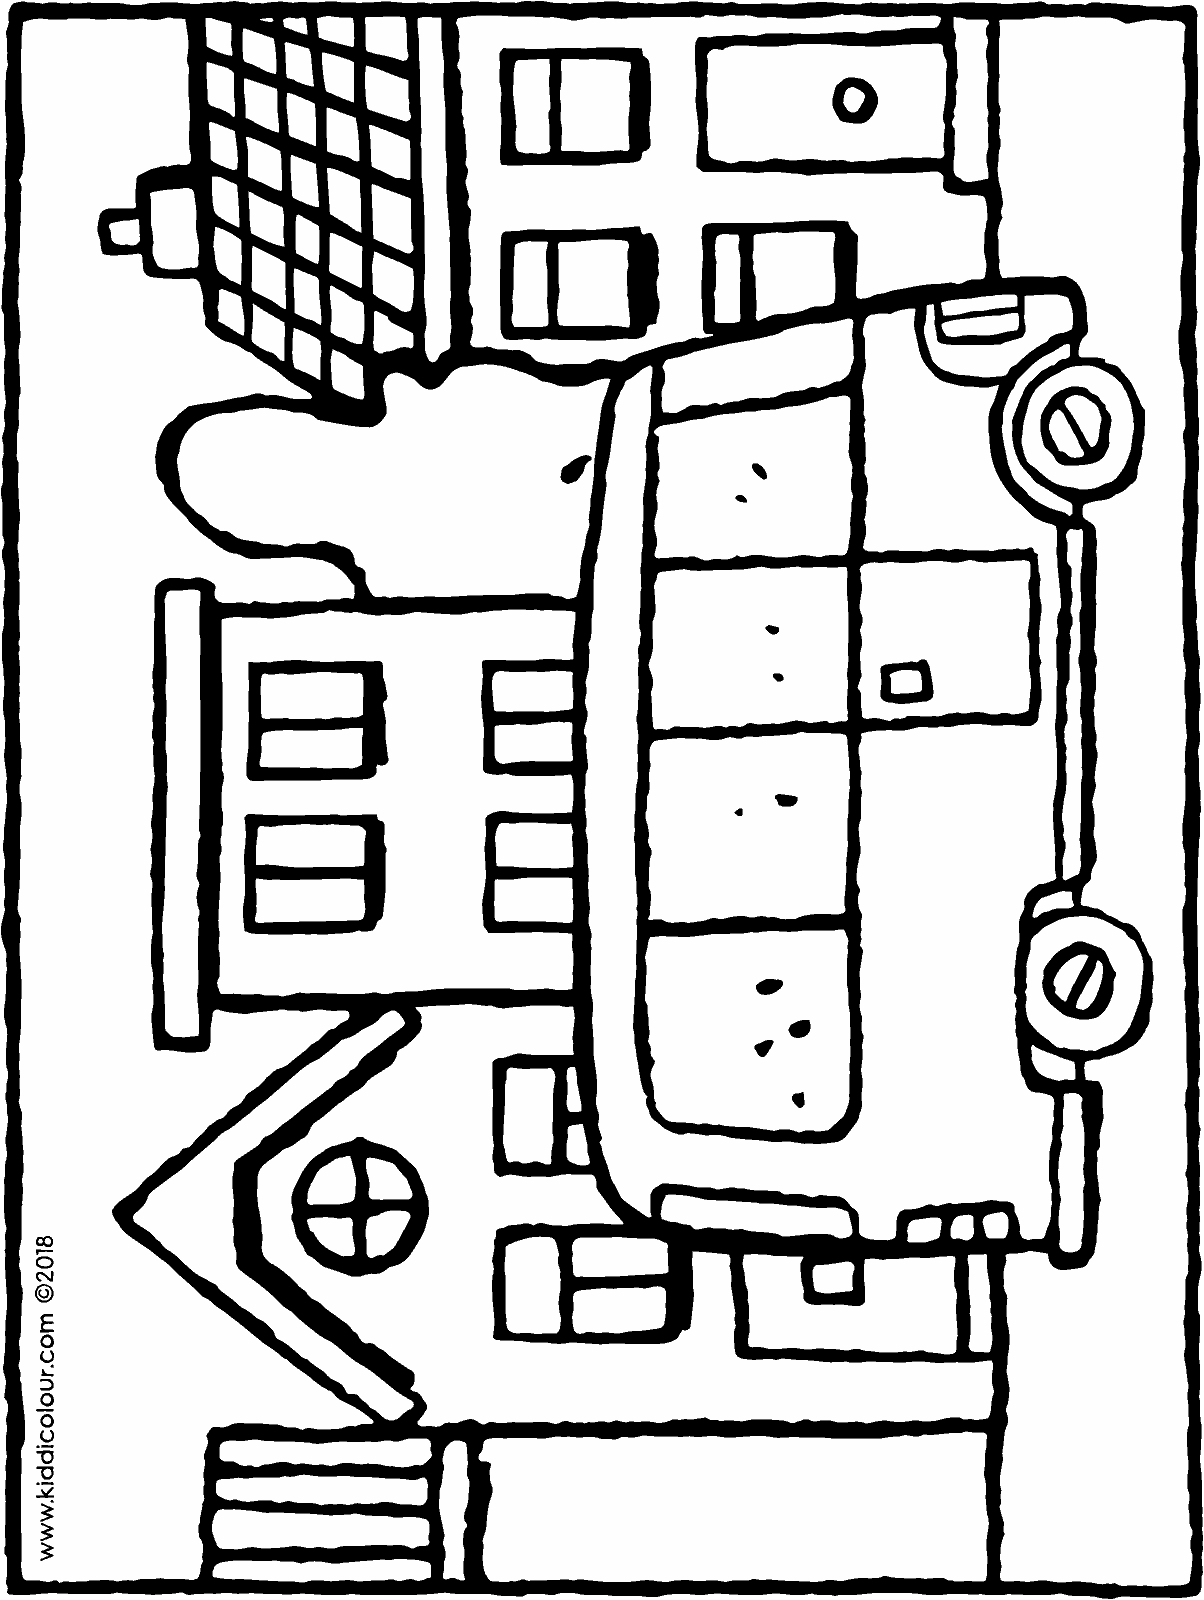 bus in the street colouring page drawing picture 01H